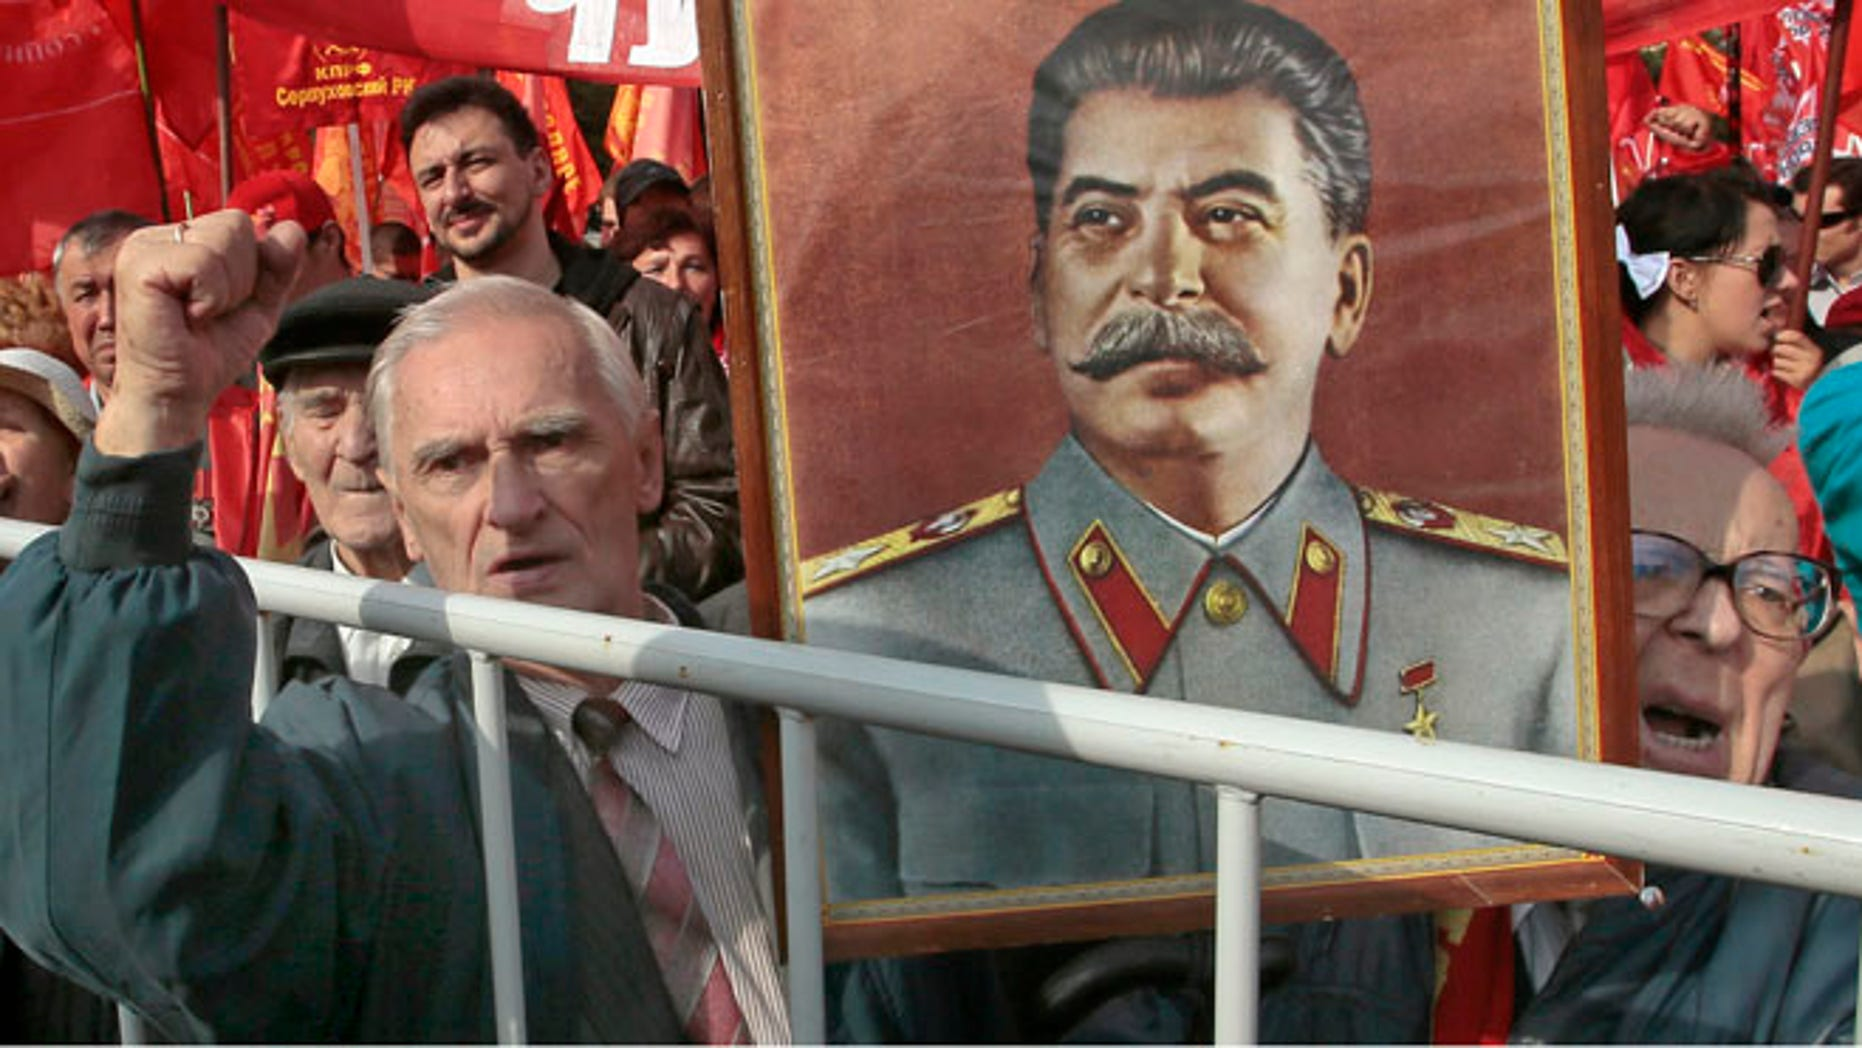 Sept. 22, 2012: Russian Communist Party supporters hold a portrait of former Soviet dictator Josef Stalin at a gathering in Moscow to protest increasing prices for communal services.